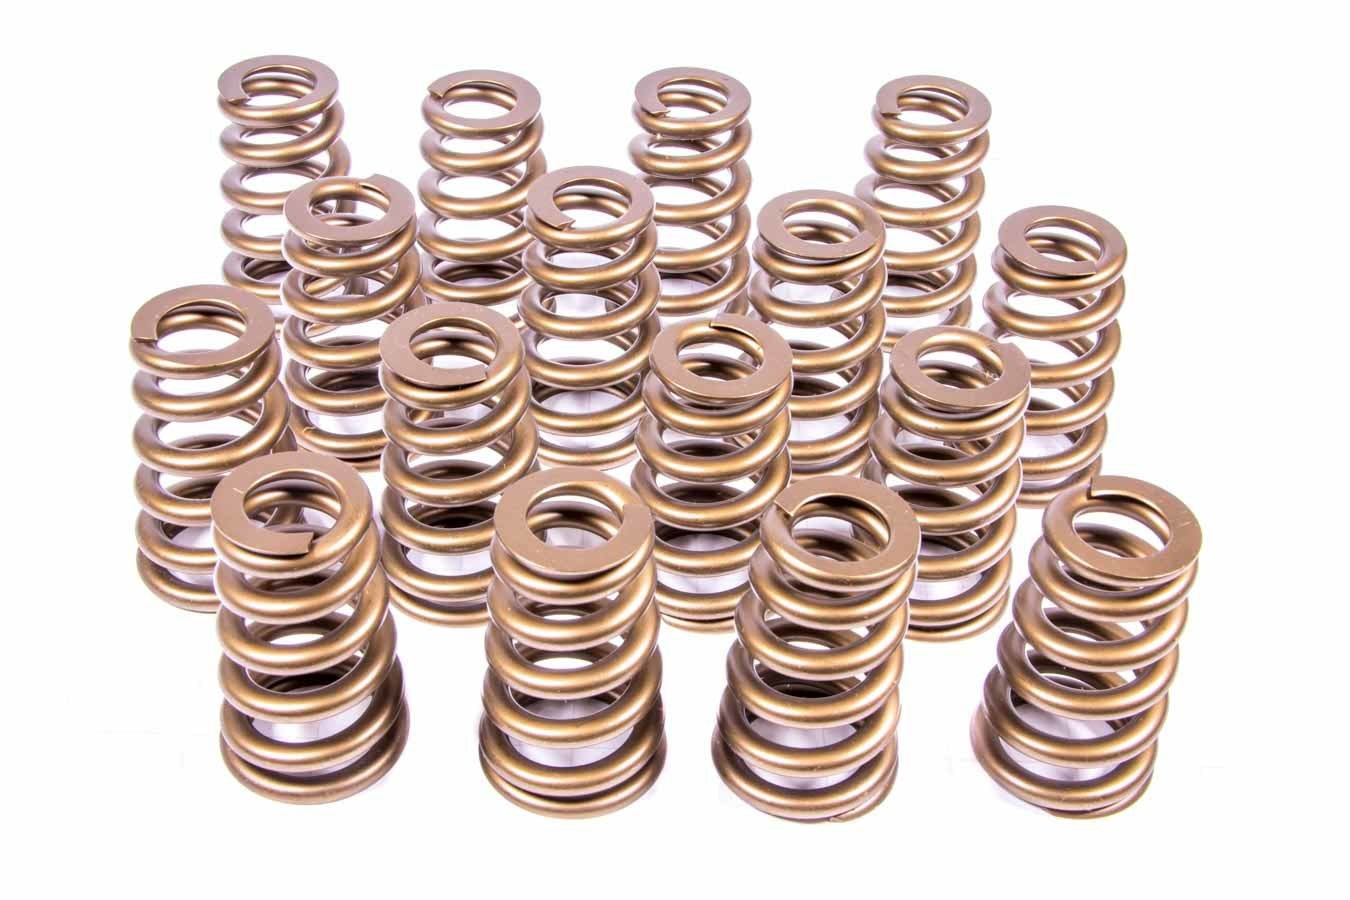 PAC Racing Springs PAC-1427 Valve Spring, 1400 Series Stock Eliminator, Ovate Beehive Spring, 500 lb/in Spring Rate, 1.190 in Coil Bind, 1.454 in OD, Big Block Chevy, Set of 16